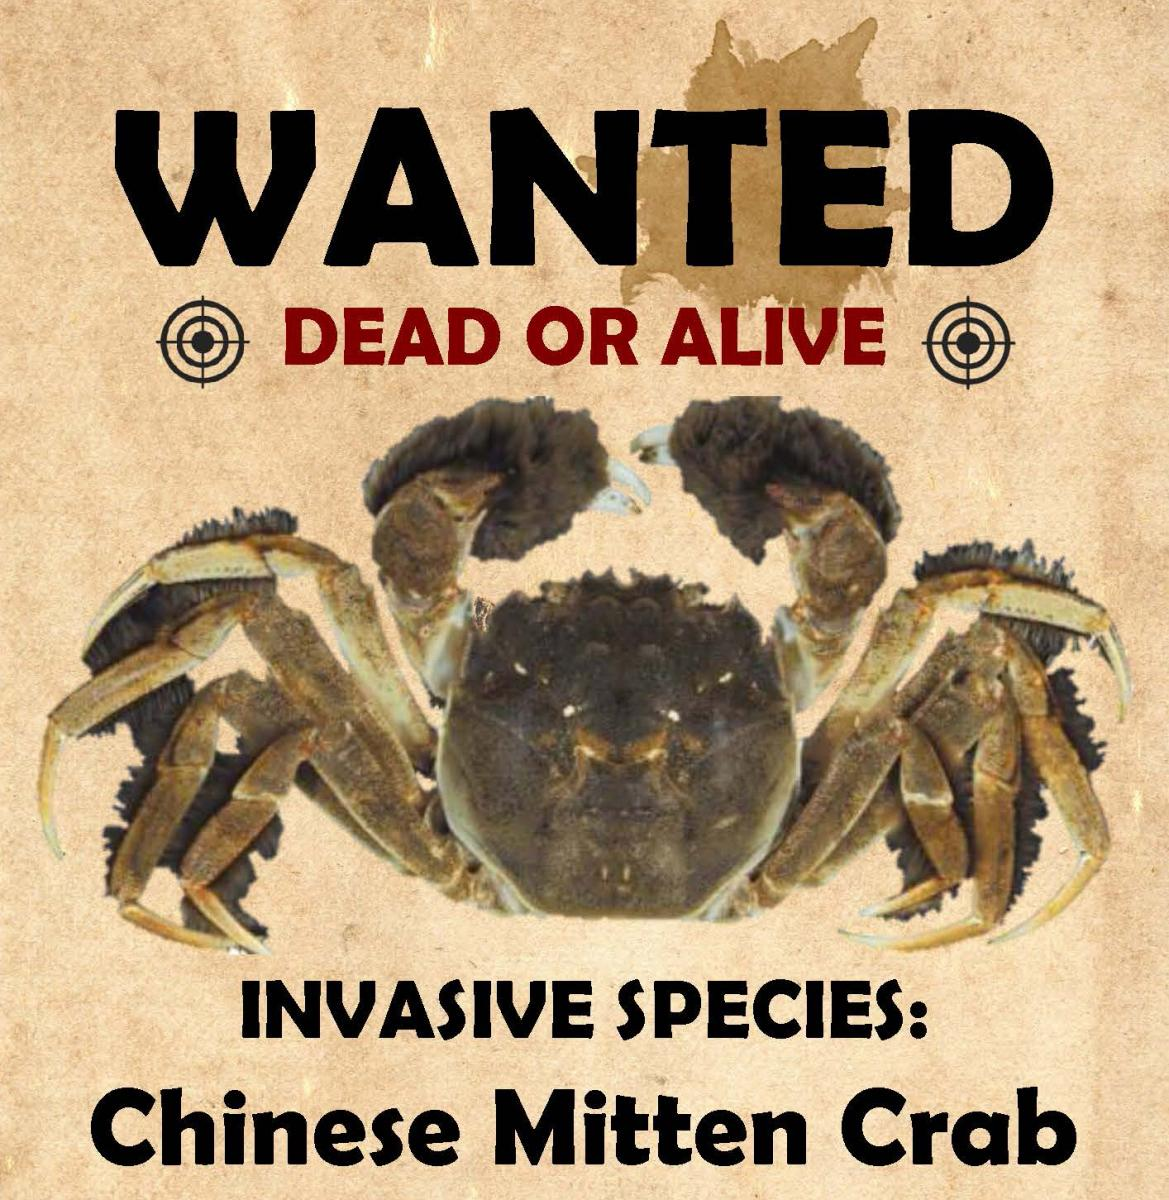 mittencrab_flyer_cropped.jpg